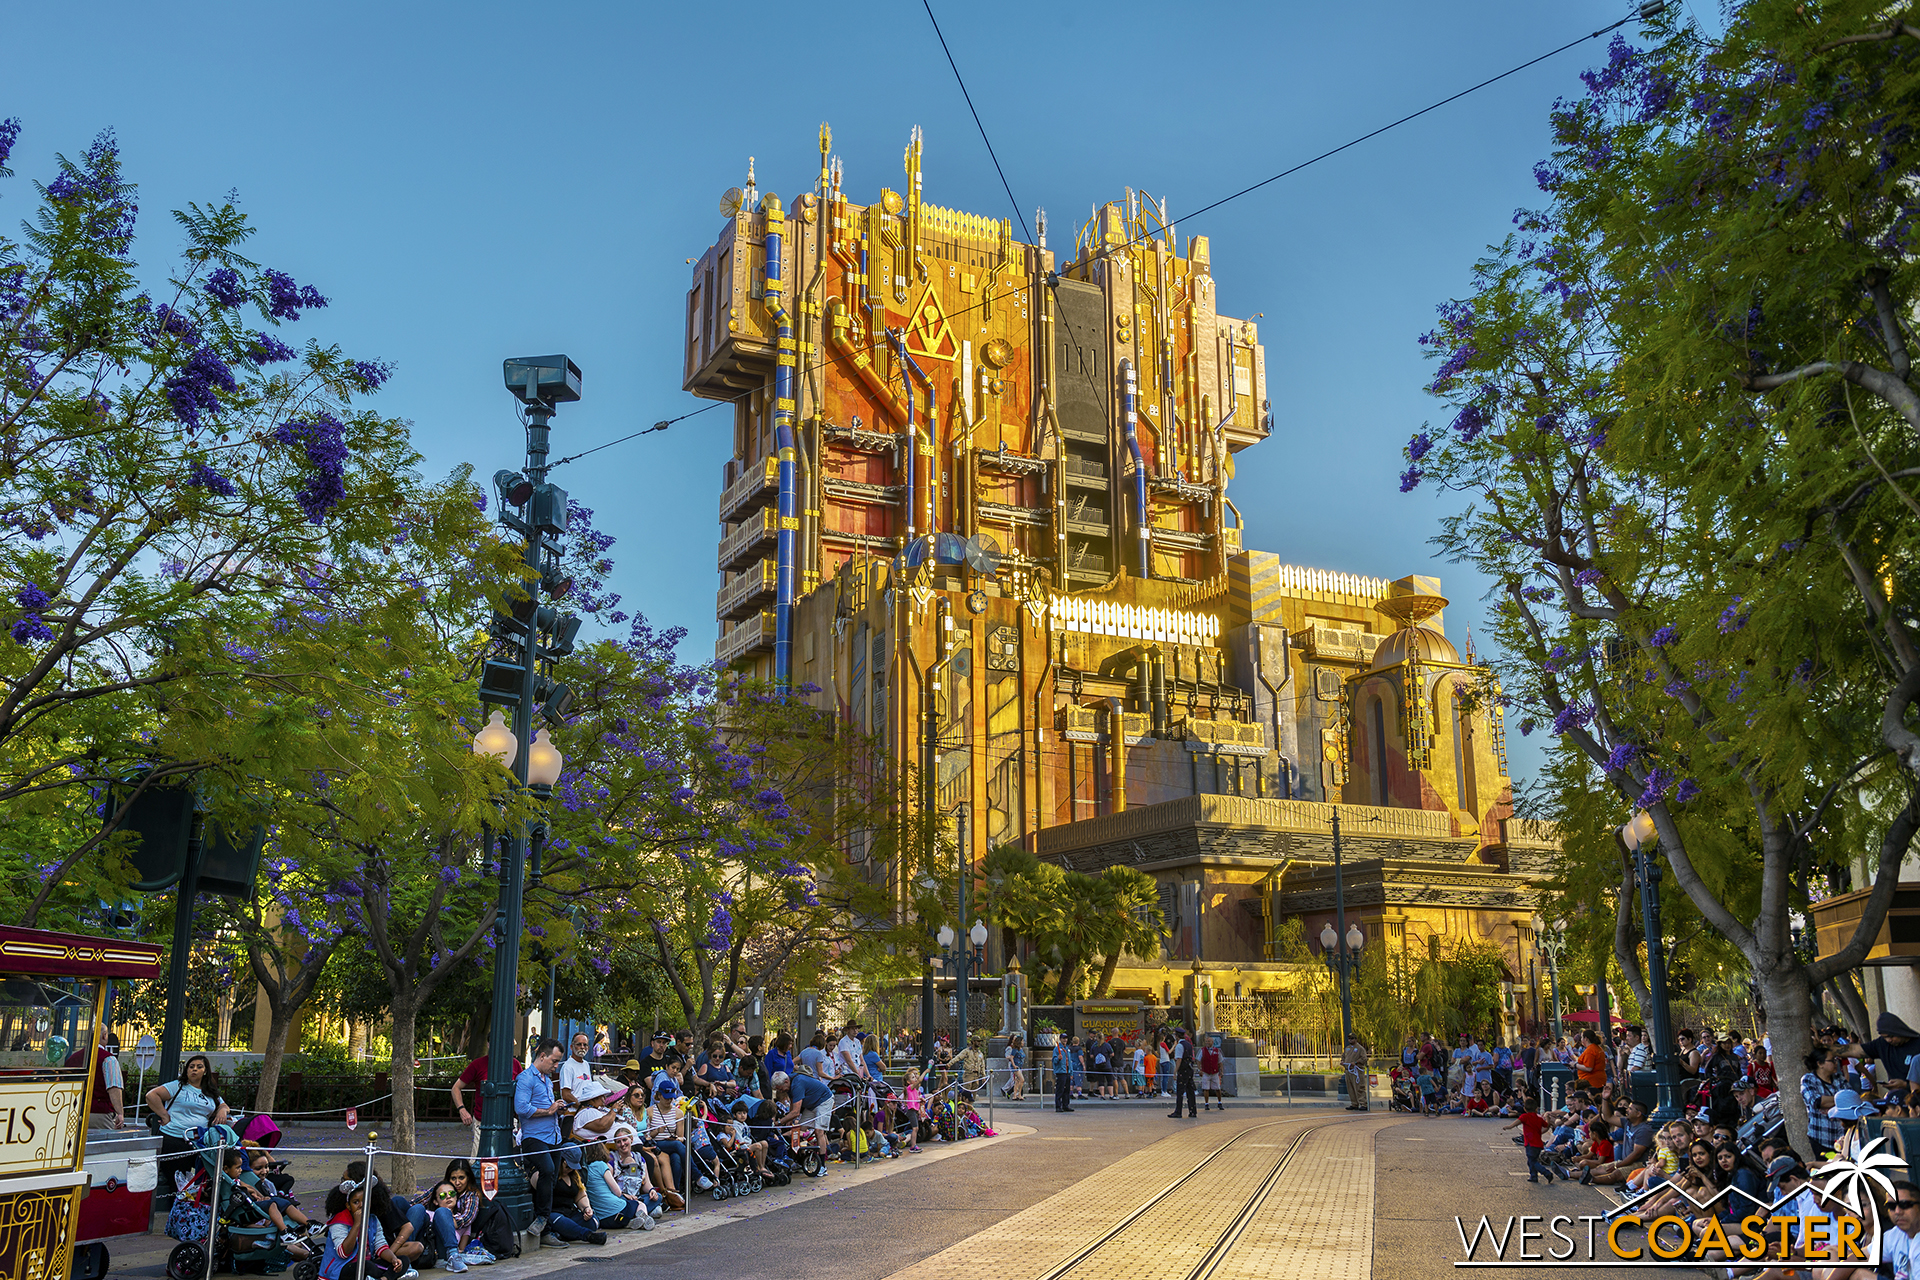 Overview, with guests lined up for the Pixar Play Parade.